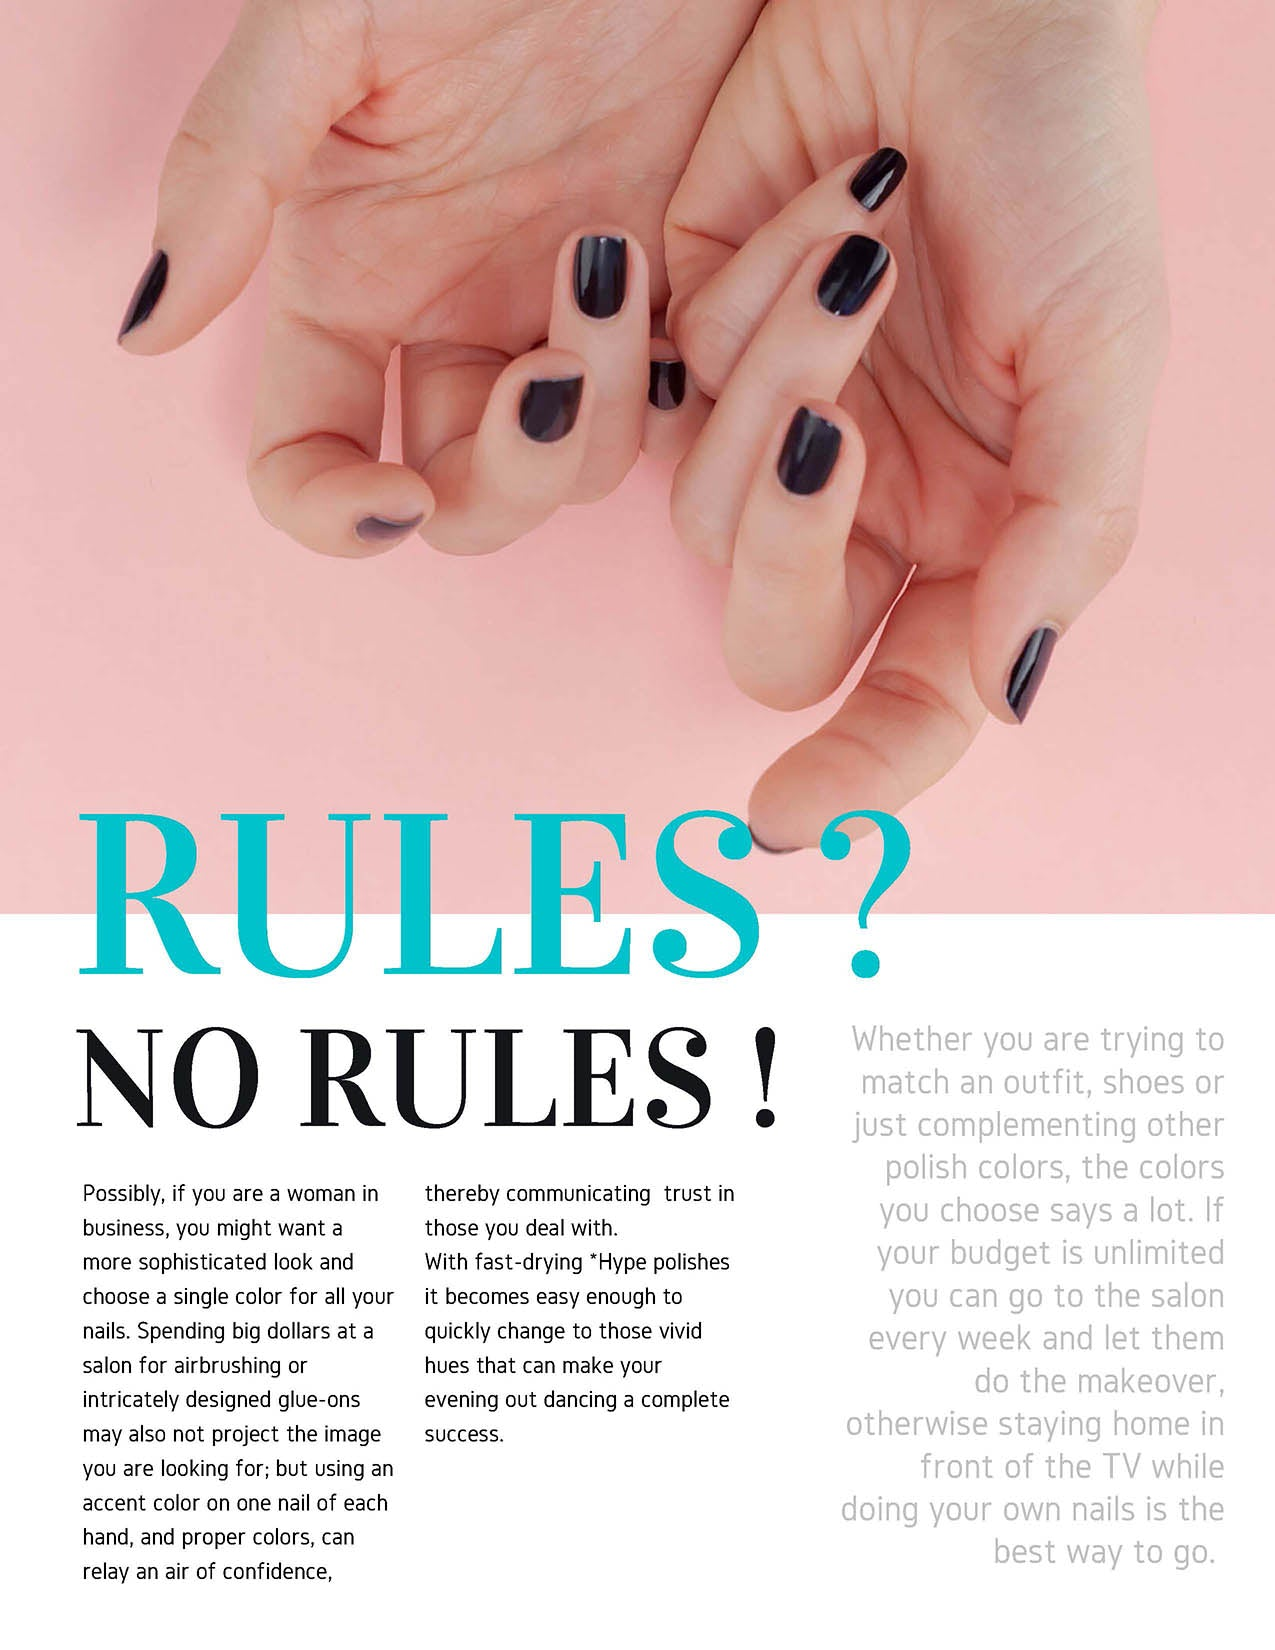 Don't worry about any rules - they are your nails